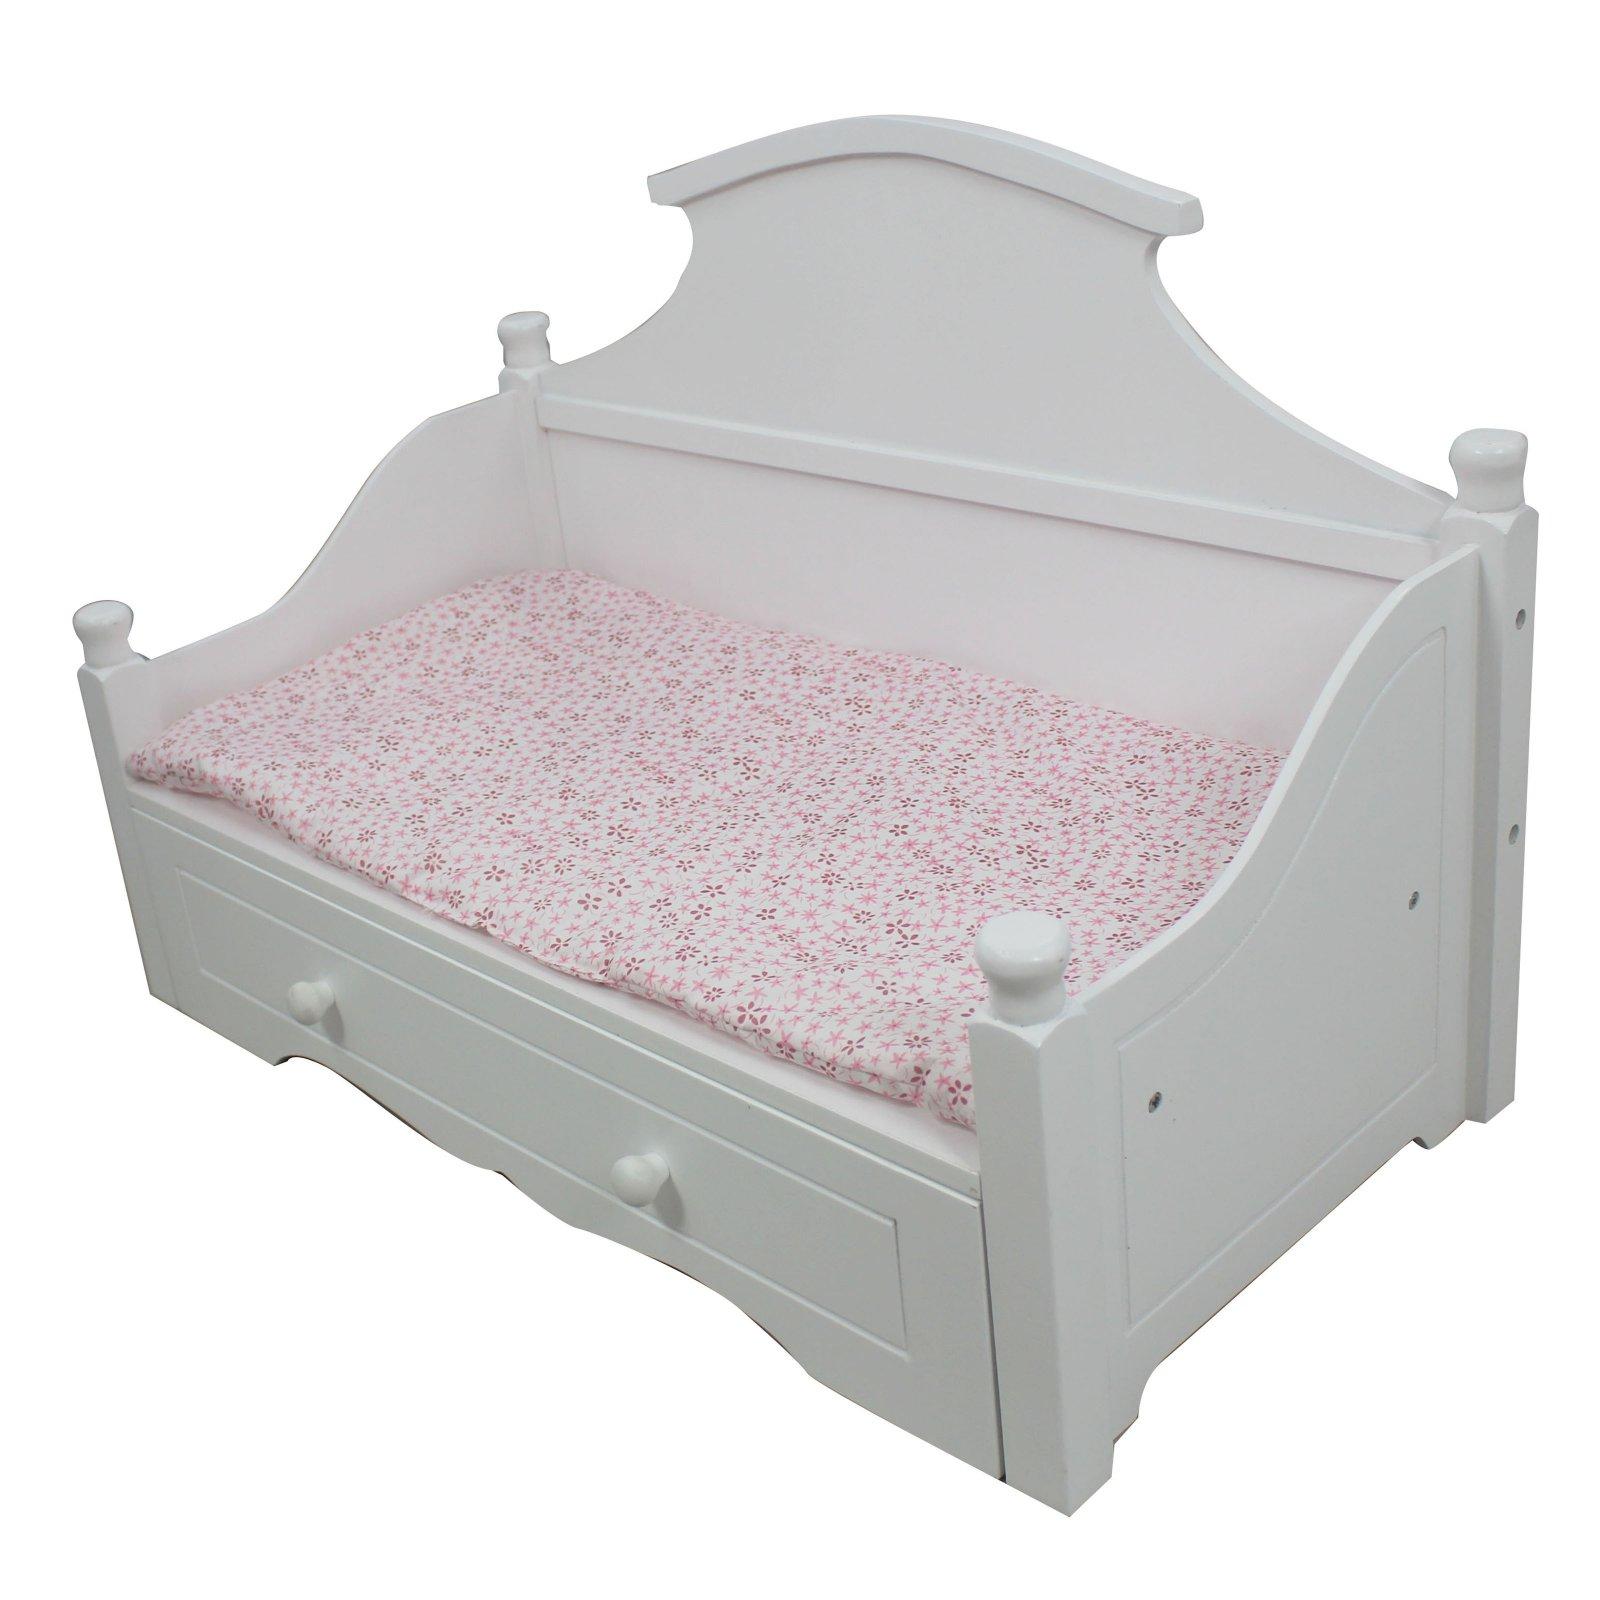 Olivia's Little World - Princess White Trundle Bed with Pink Floral Mettress Wooden 18 inch Doll Furniture